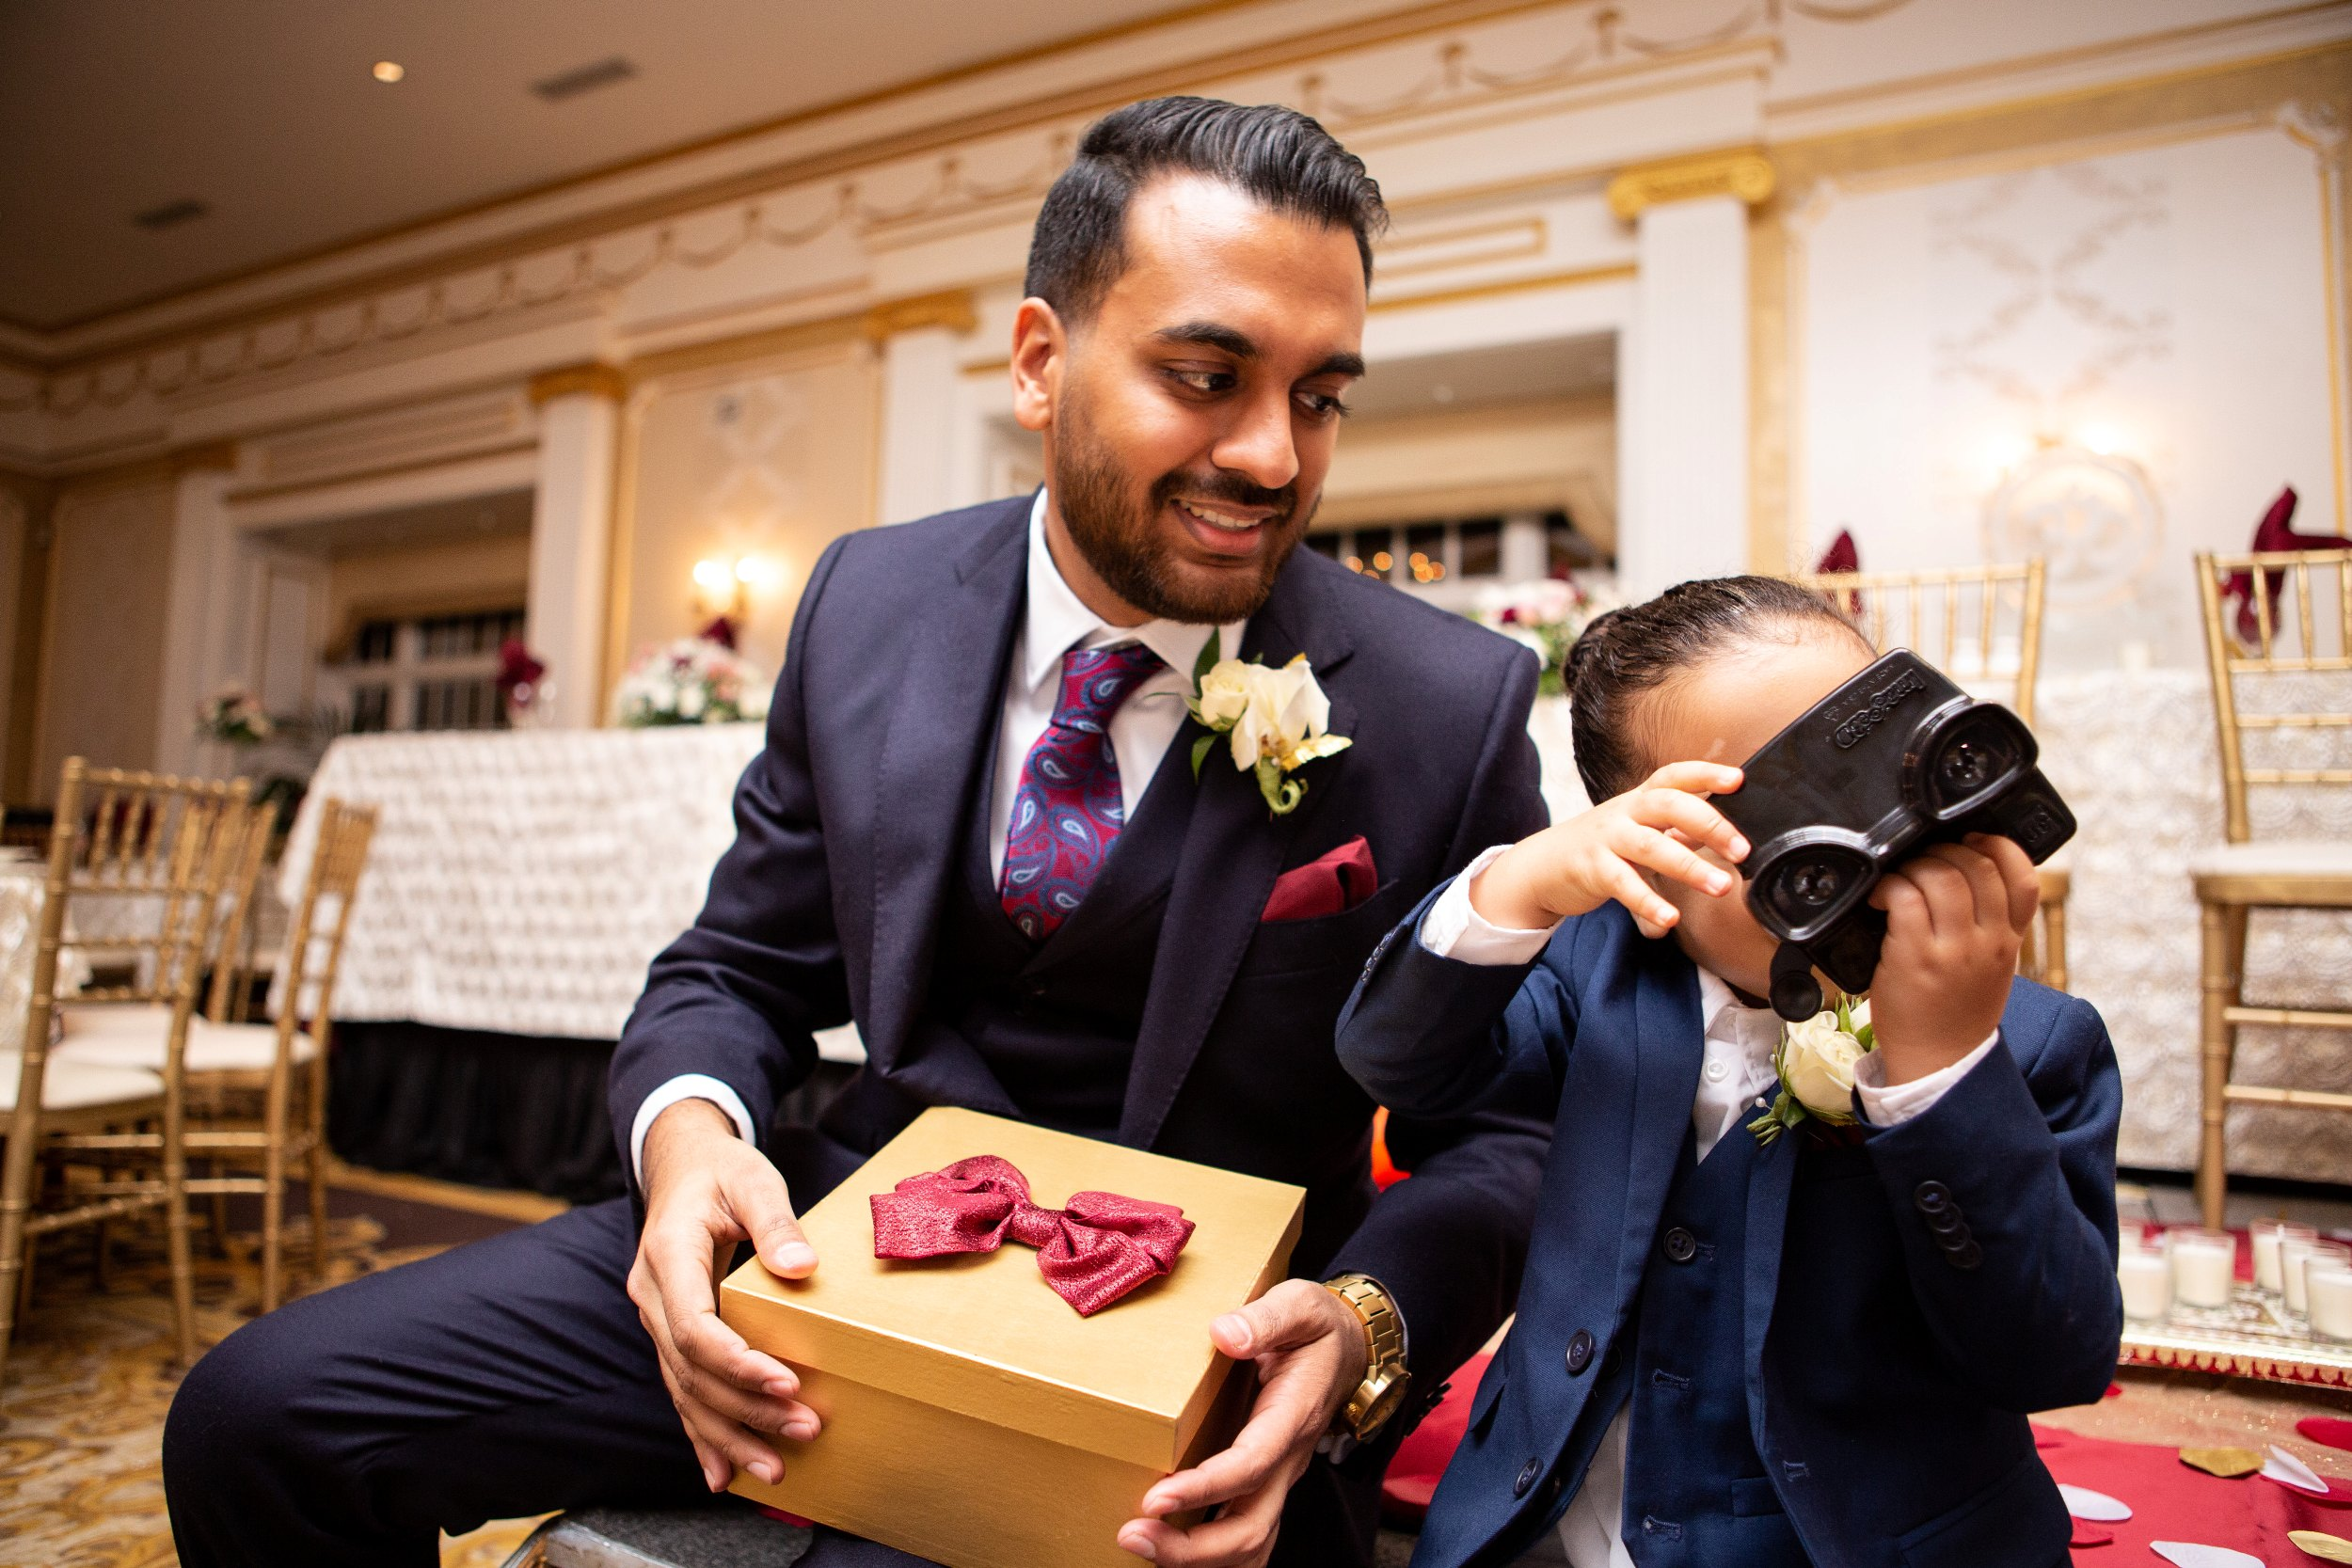 Groom and his son enjoy viewfinder